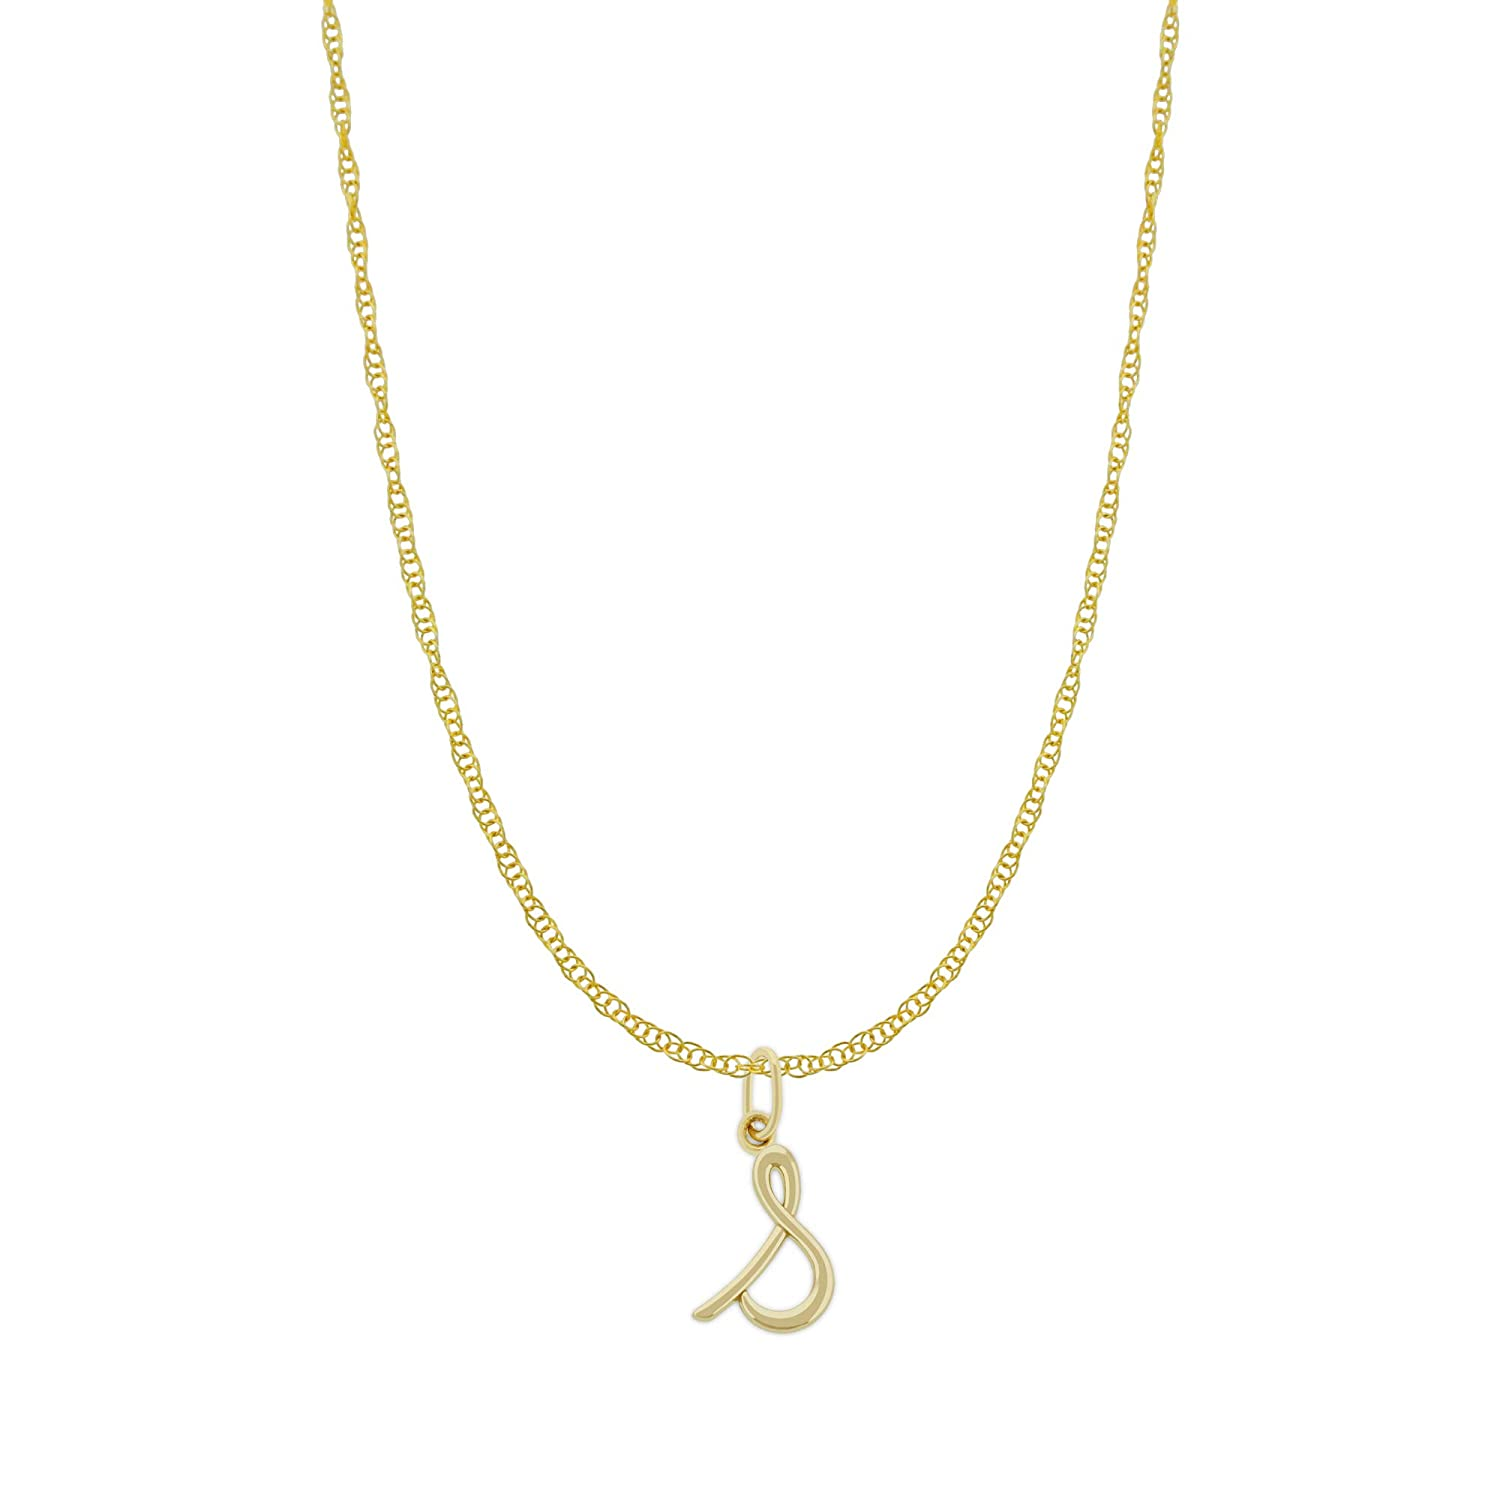 Optional Gold Chain 14 Karat Solid Gold Charm America Gold Lower Case Initial S Charm